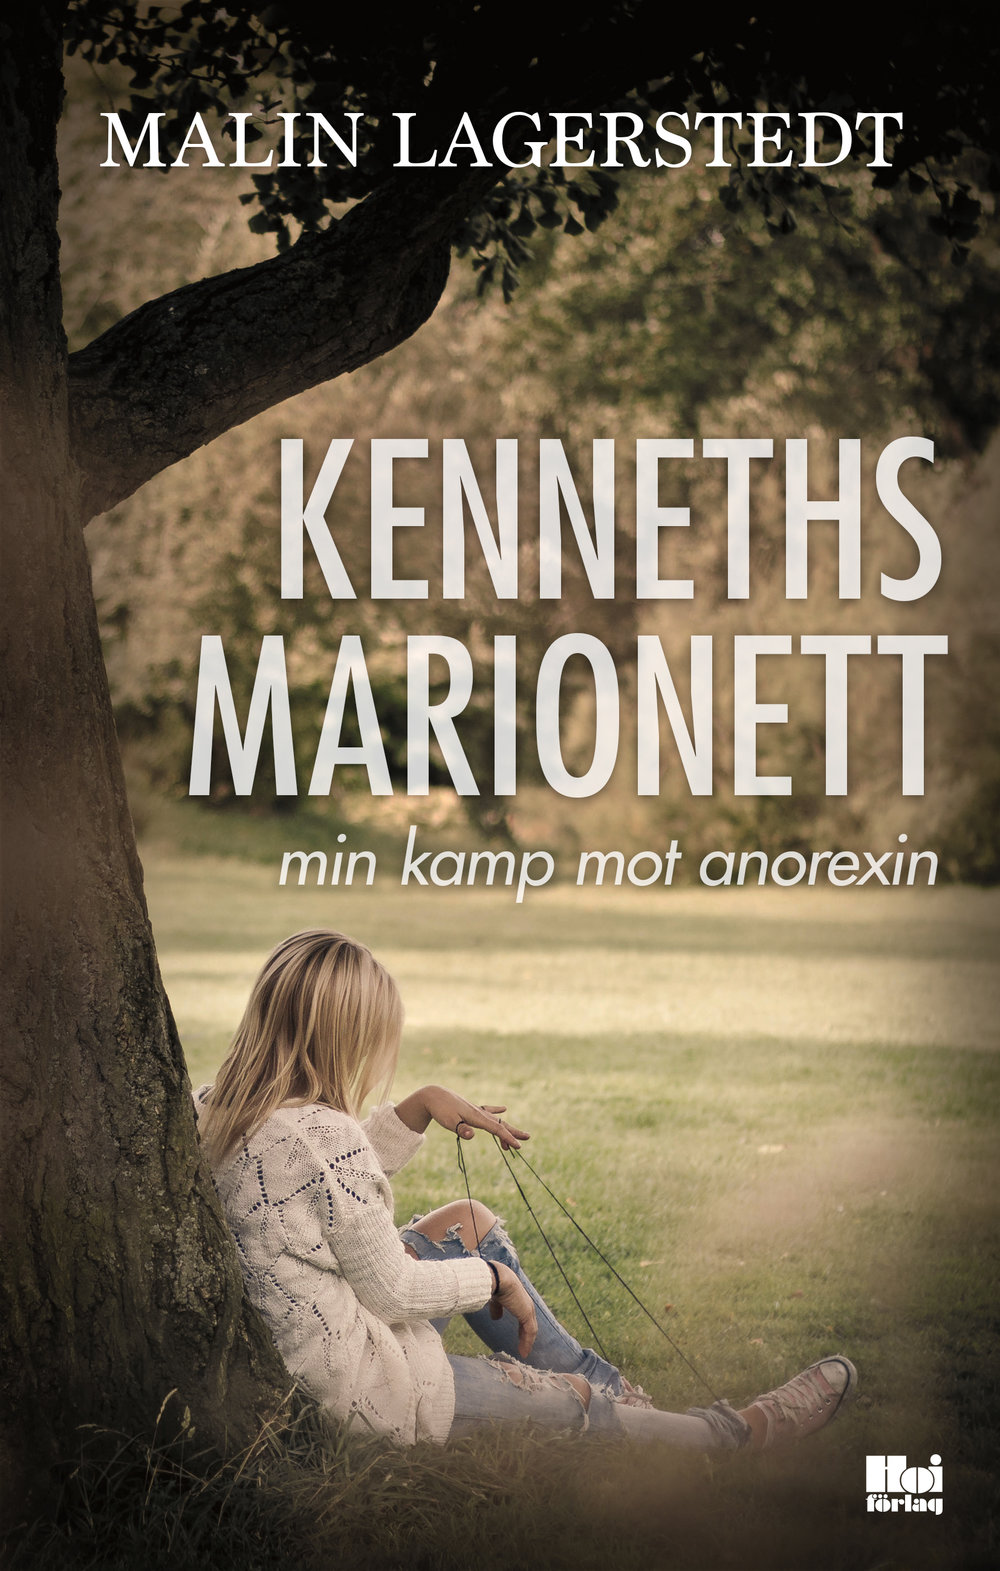 Kenneths marionett